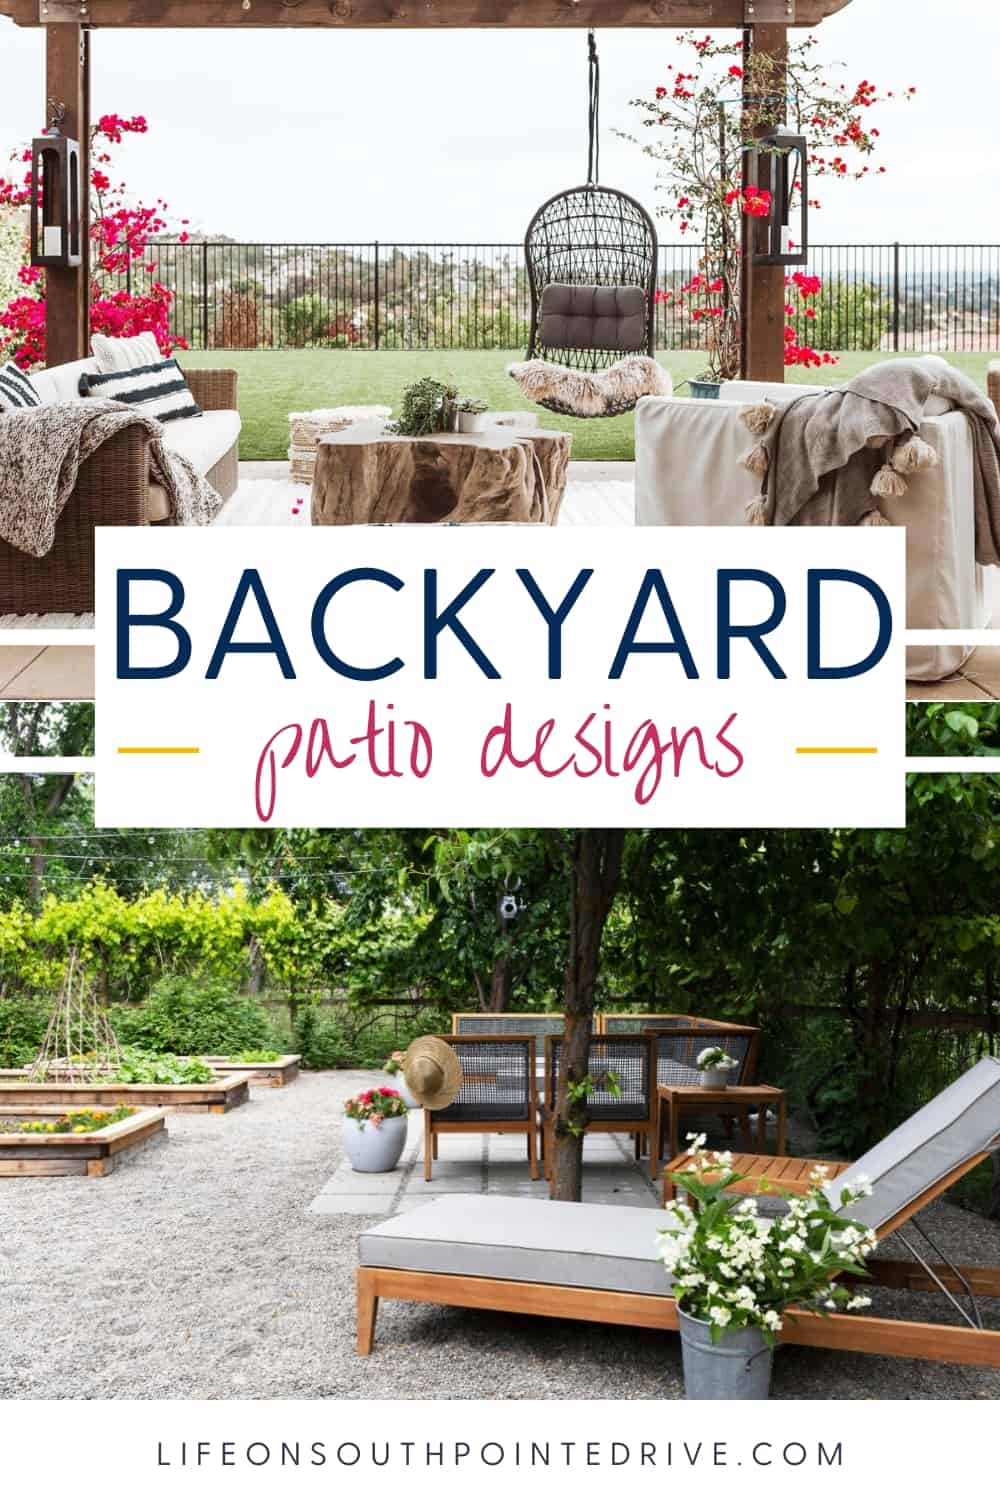 16 Beautiful Backyard Patio Designs Life On Southpointe Drive